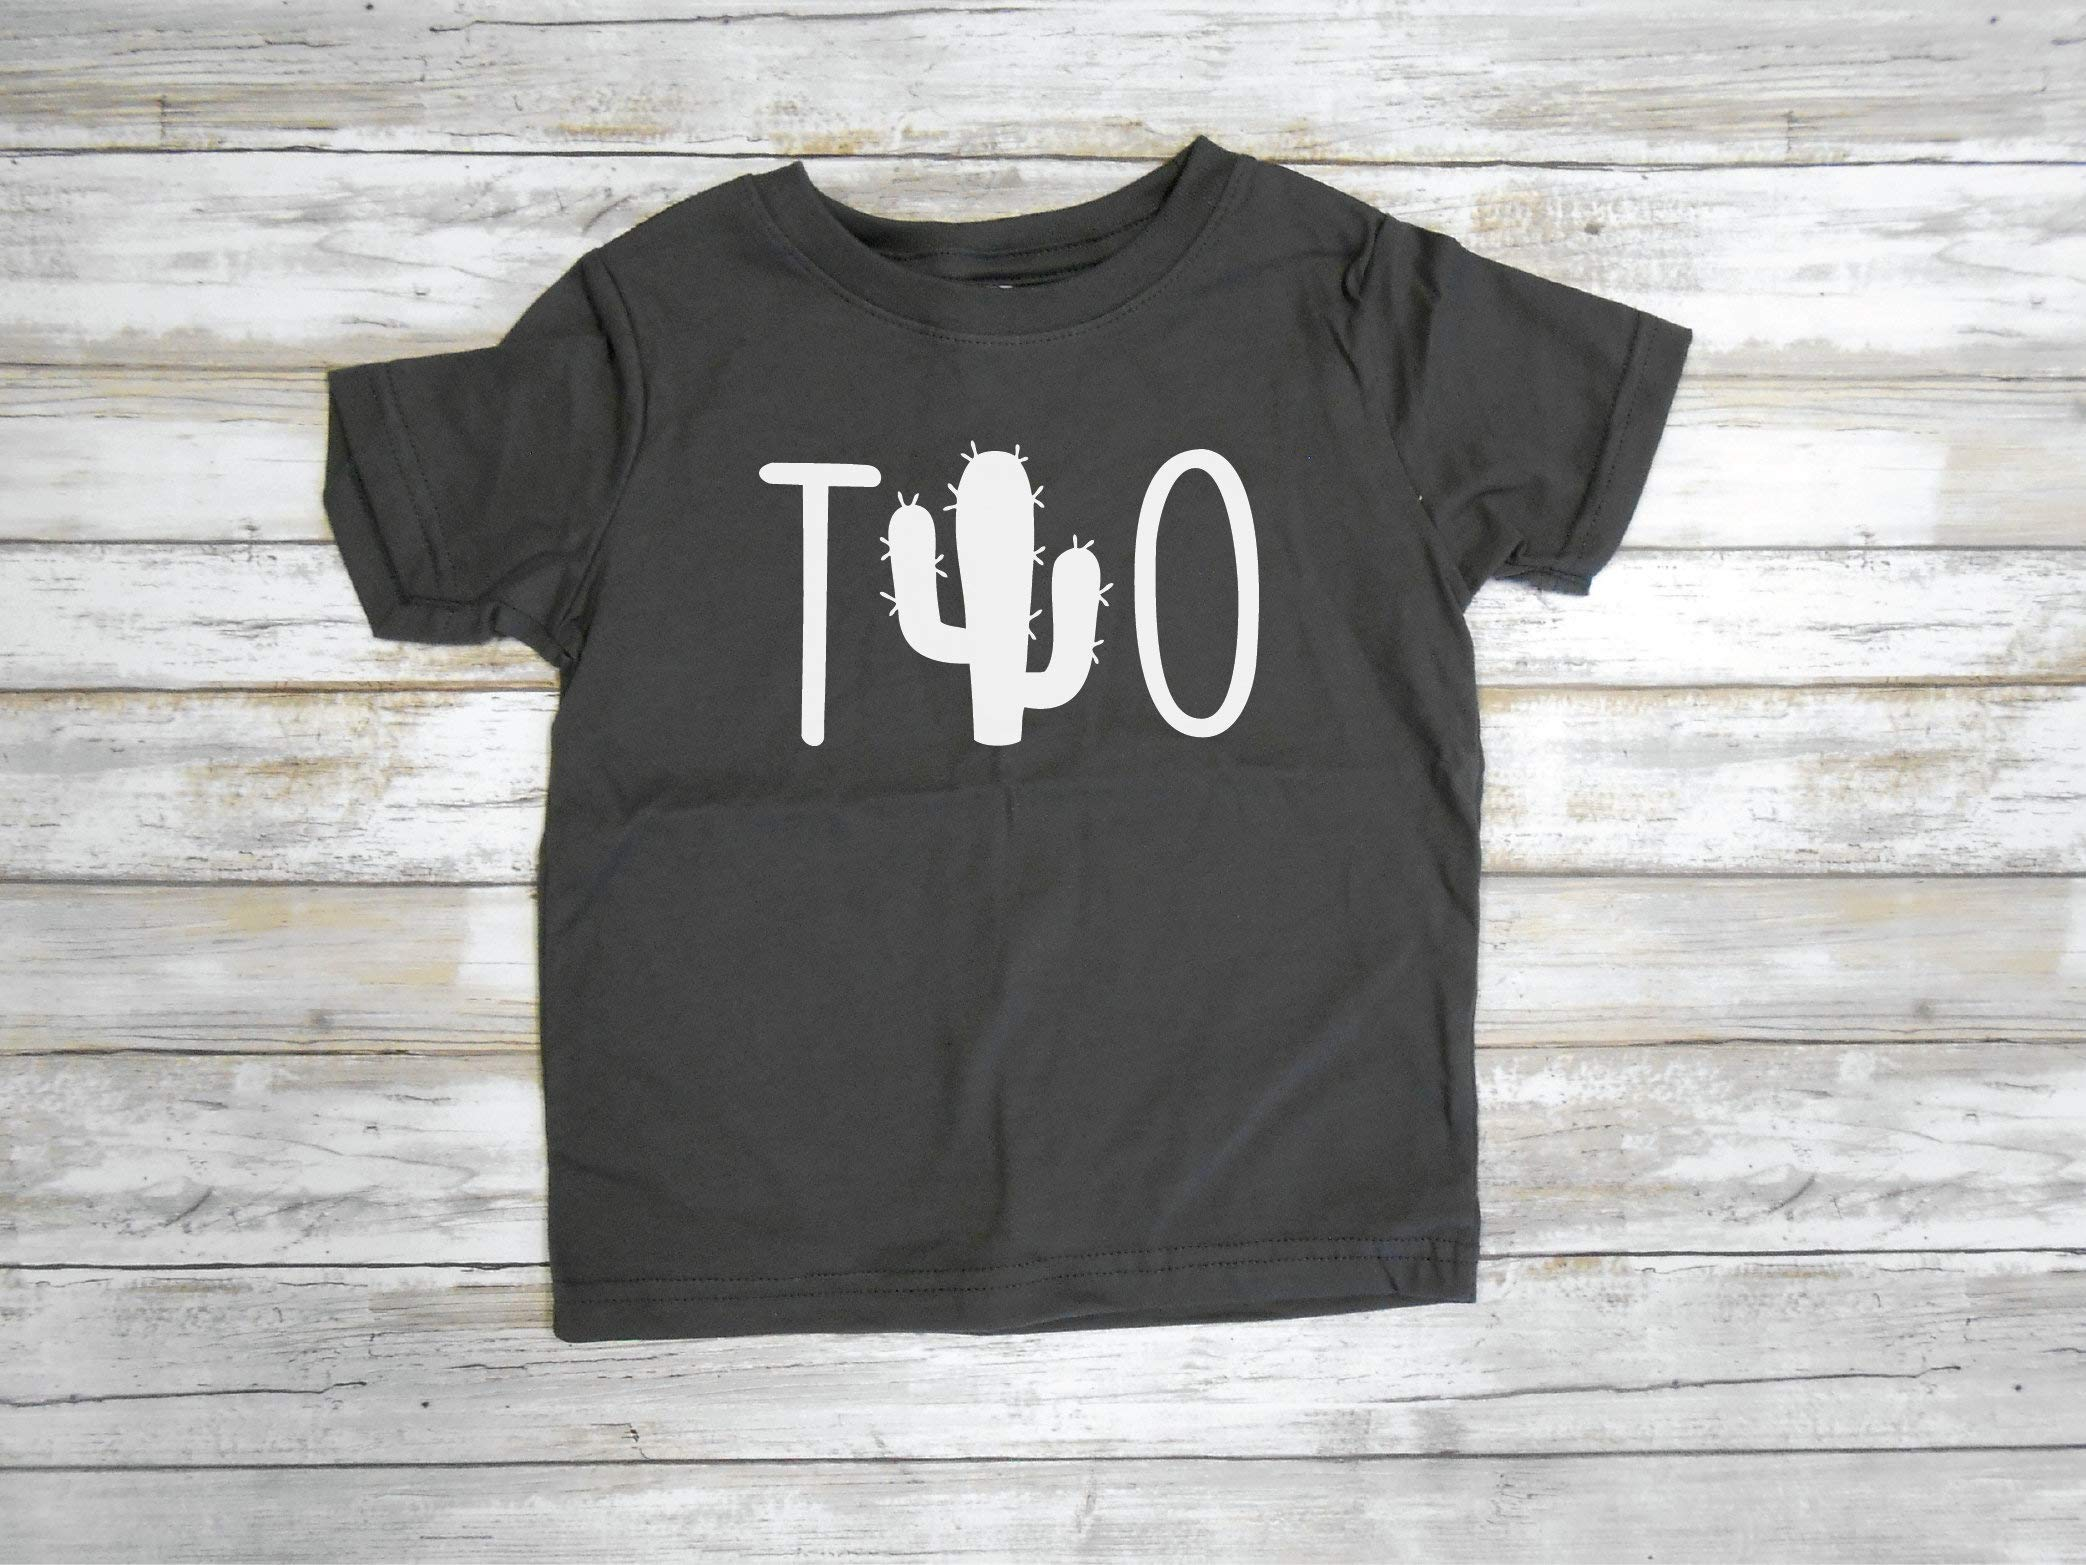 Two Cactus Shirt, Dos Birthday Shirt, Second Birthday, Cactus Birthday Party Tee, Second Birthday Party Outfit, Toddler Tee, Two Shirt